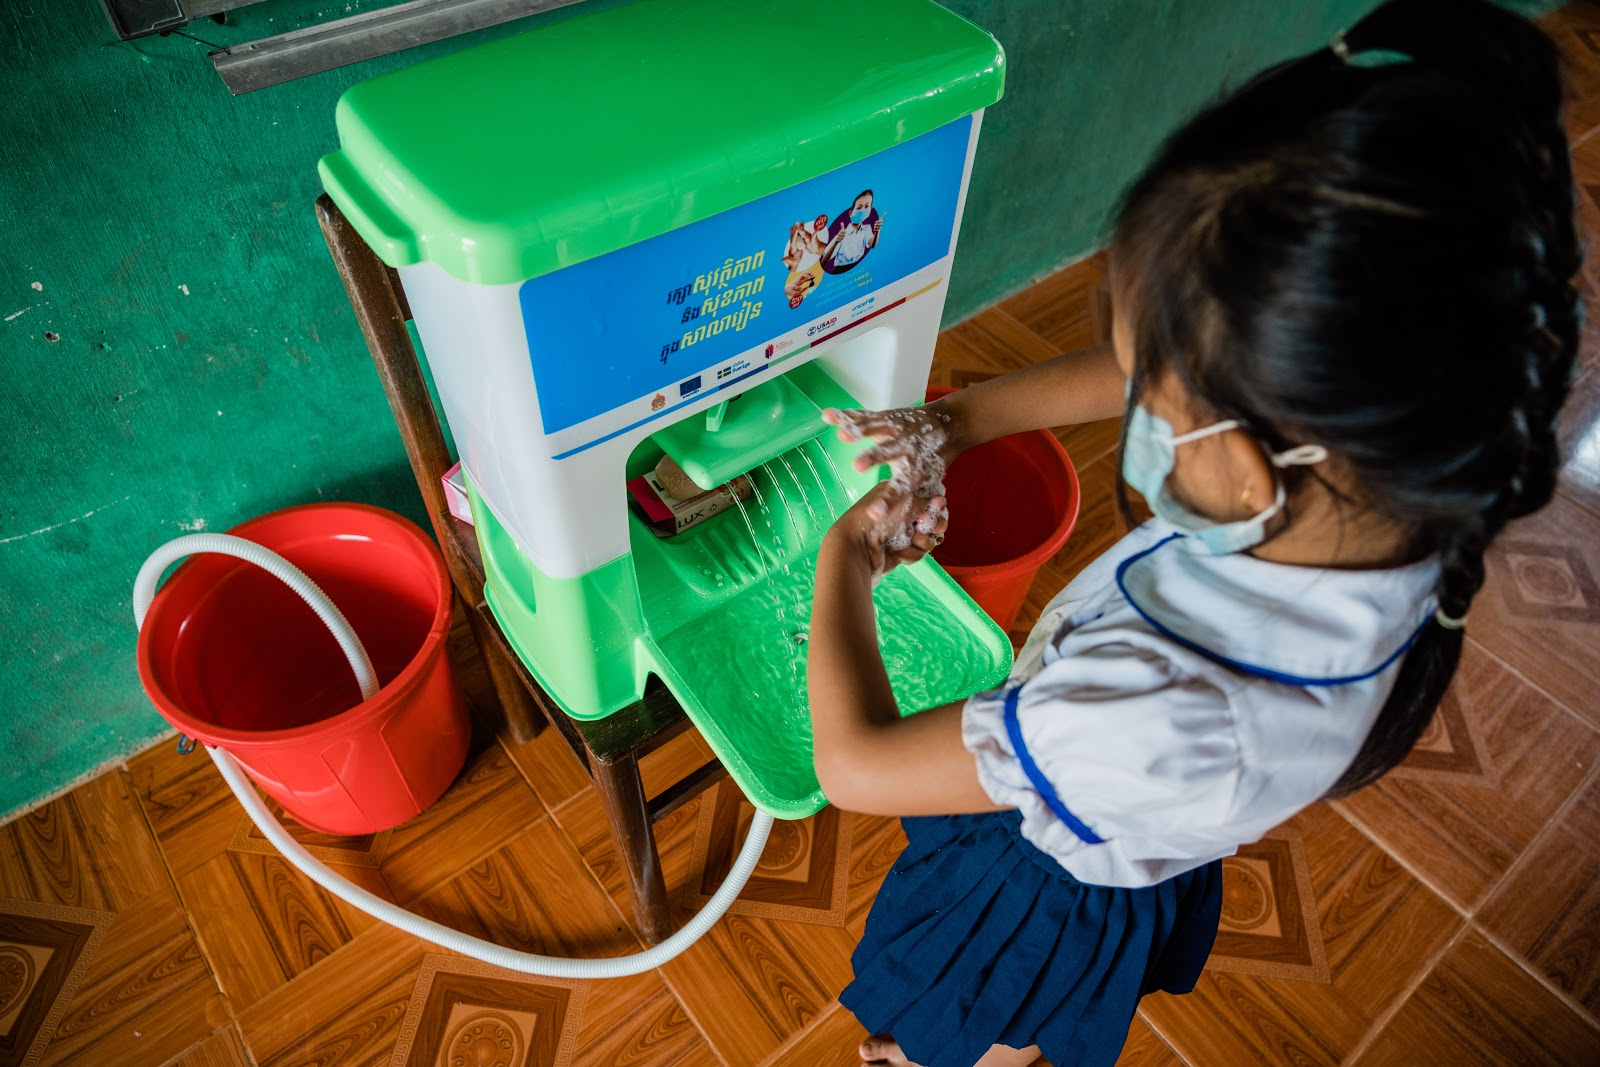 UNICEF: Handwashing Stations and Supplies for COVID-19